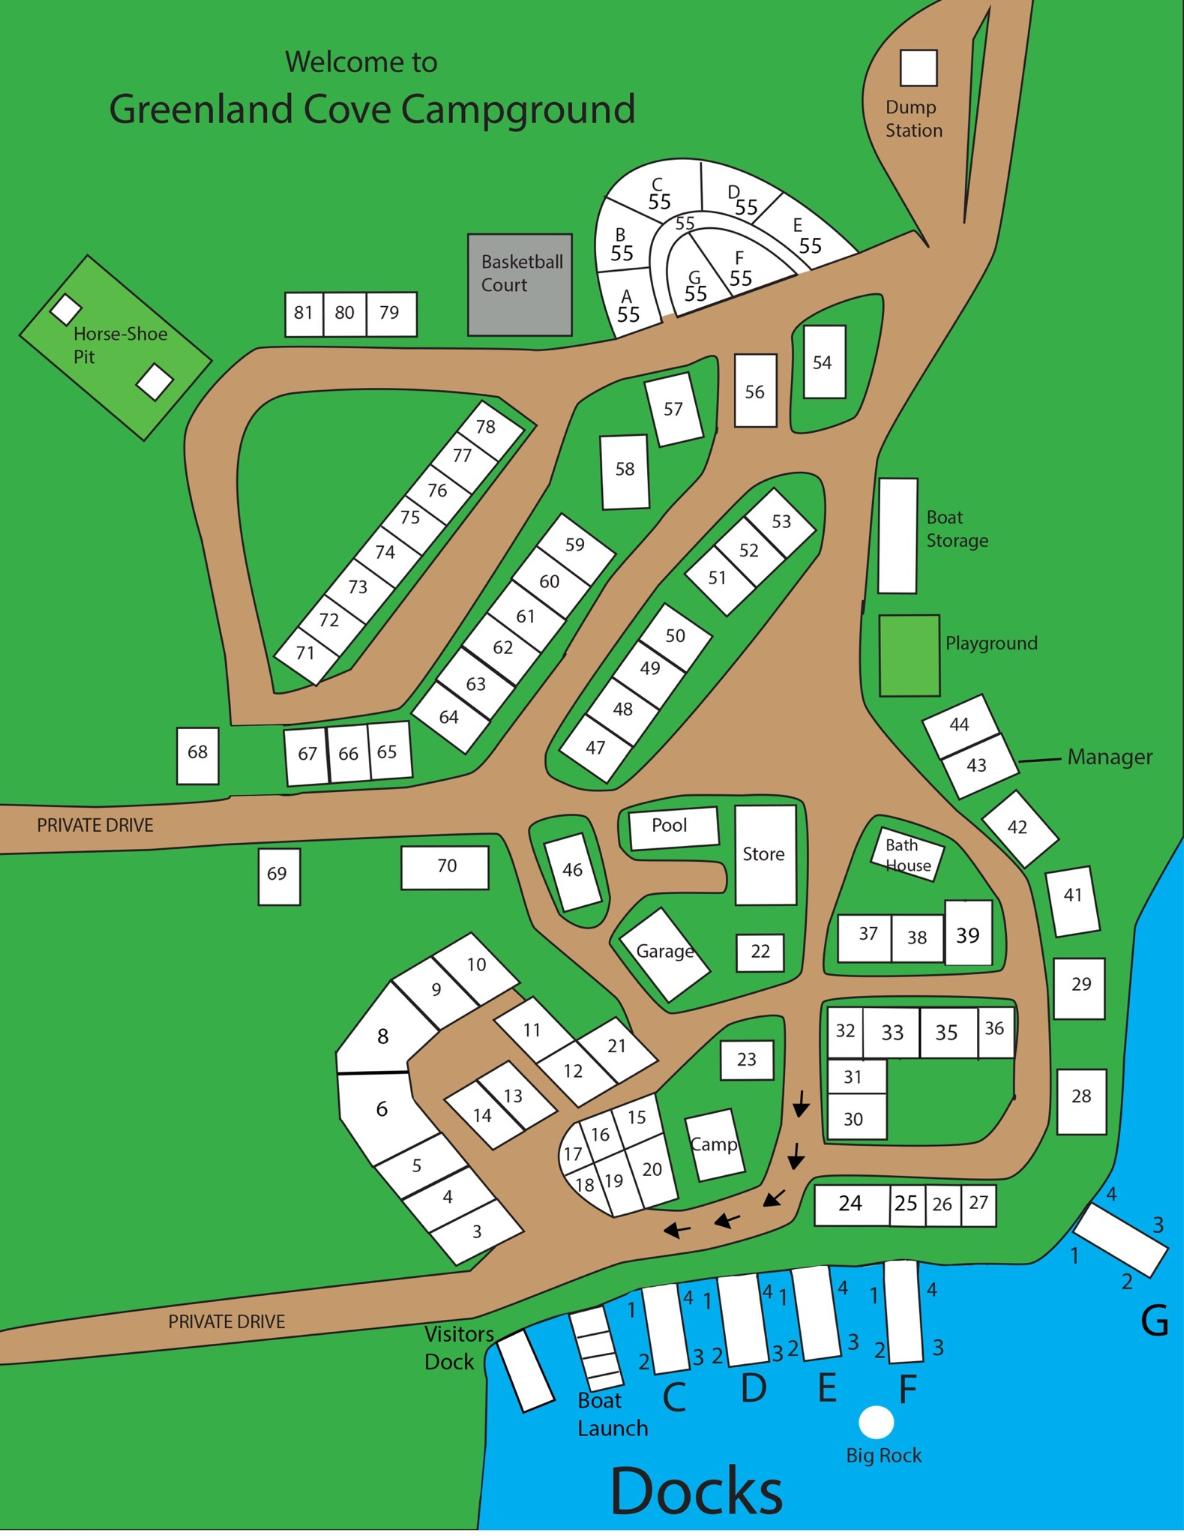 Danforth Maine Map.Map Rates Greenland Cove Campground